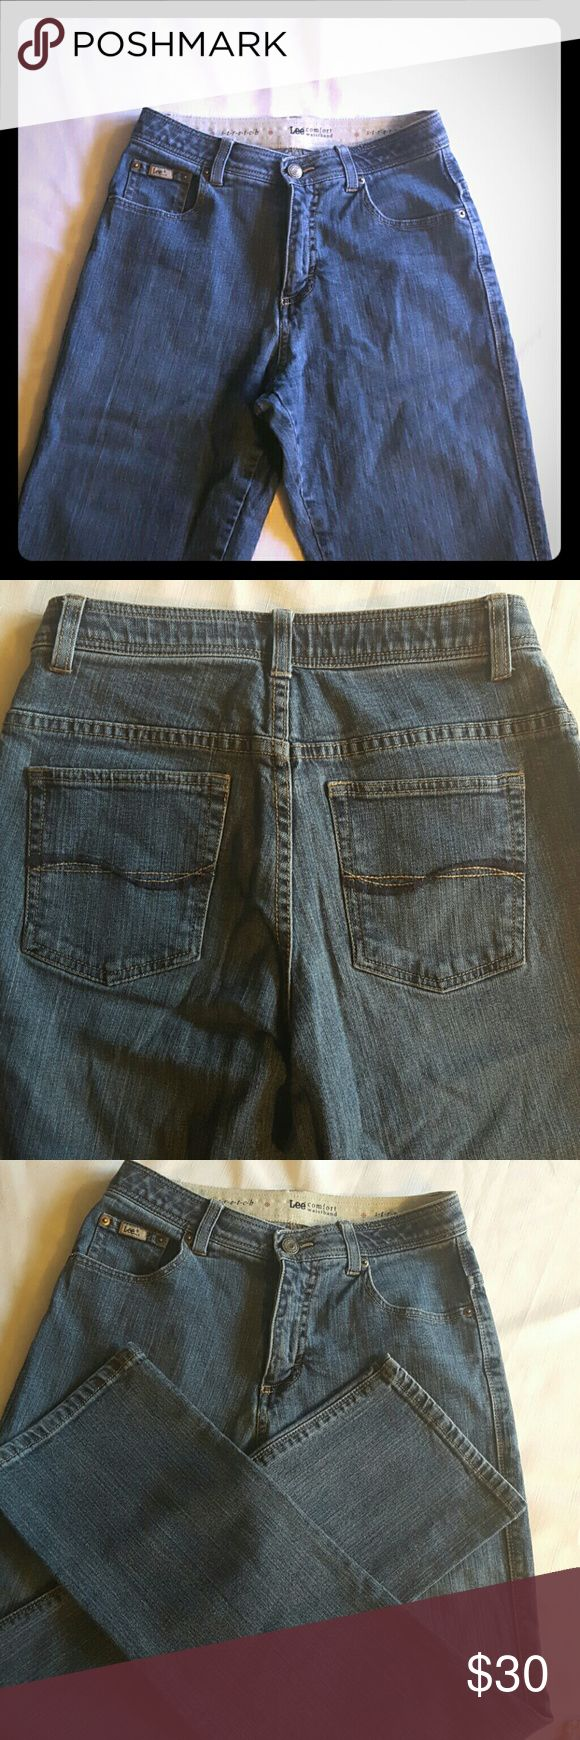 High waist Lee jeans In excellent condition Lee jeans Lee Jeans Straight Leg